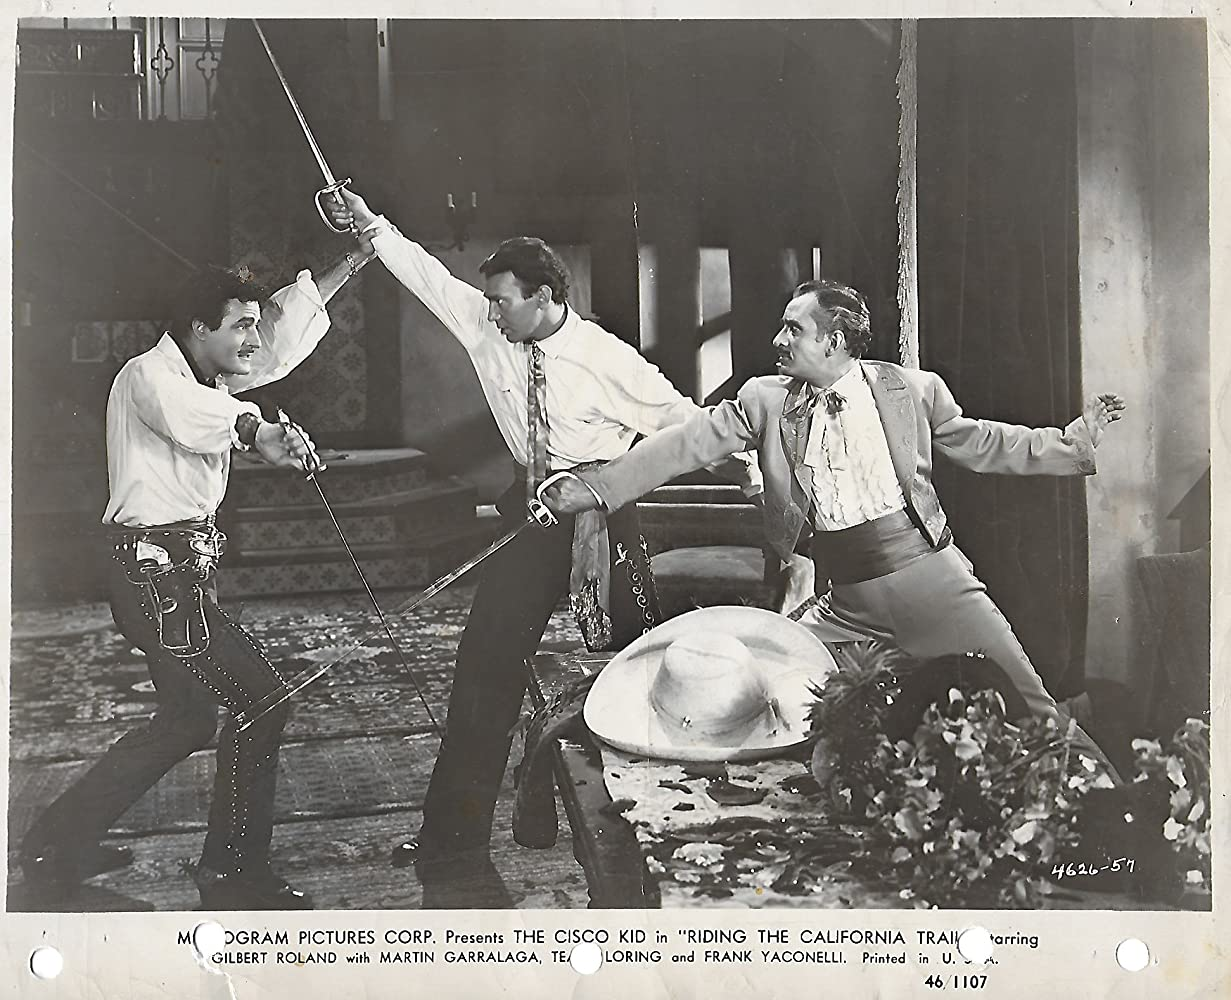 Martin Garralaga, Ted Hecht, and Gilbert Roland in Riding the California Trail (1947)